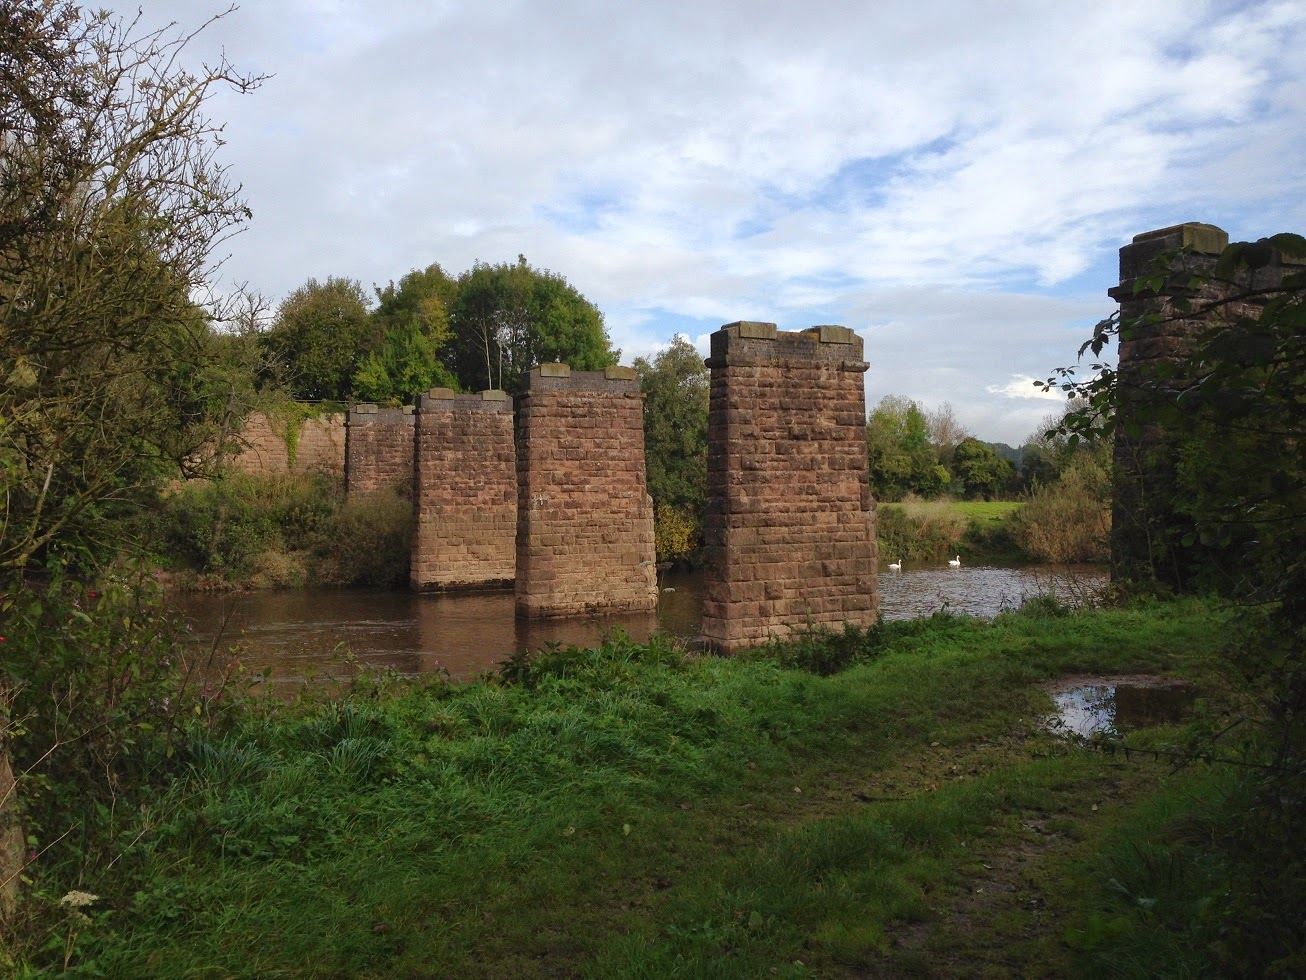 Remains of old railway bridge, Ross-on-Wye, Herefordshire